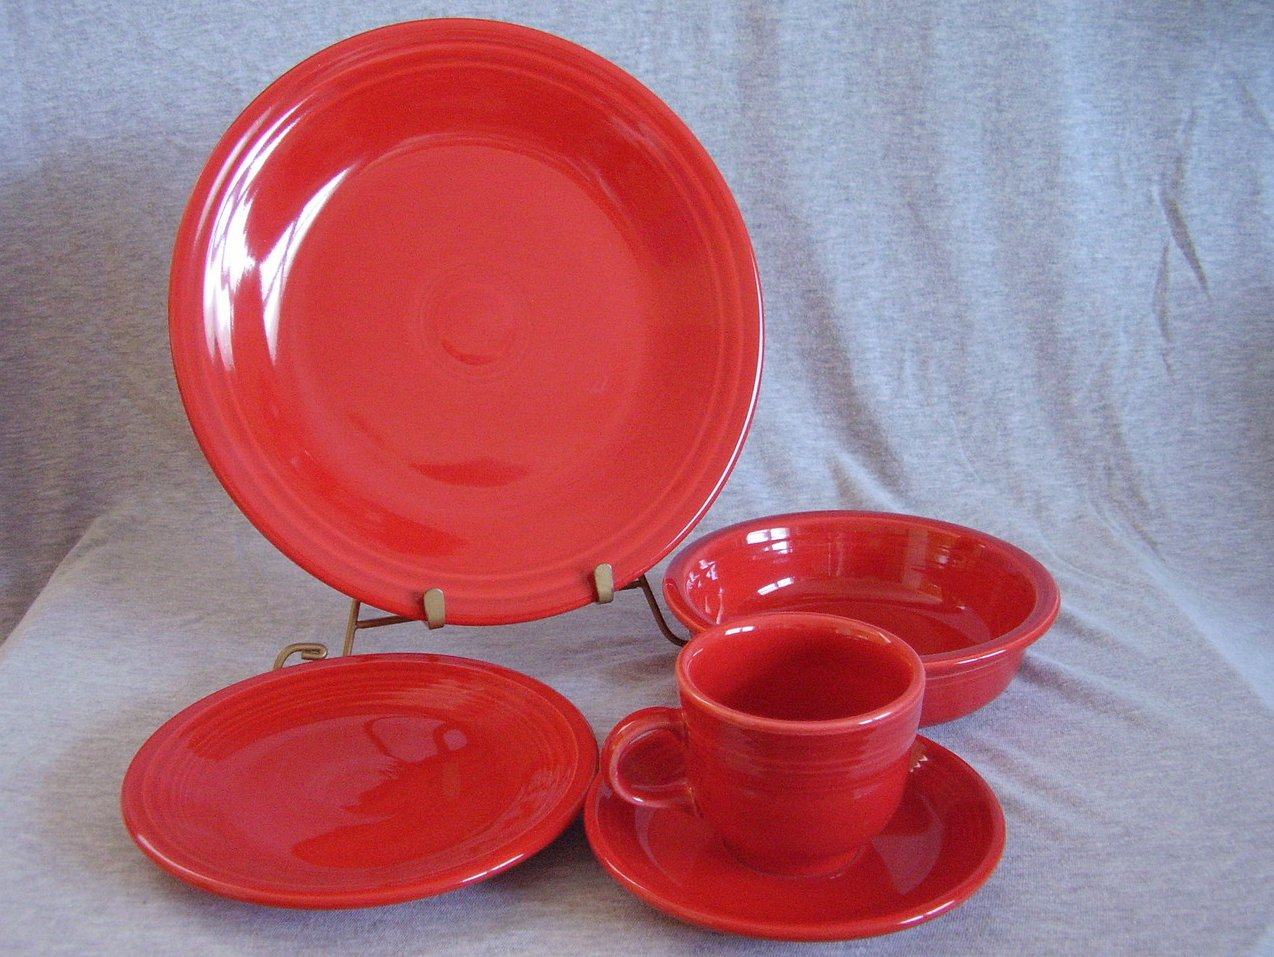 Fiesta Scarlet 5pc Placesetting NIB Fiestaware Contemporary